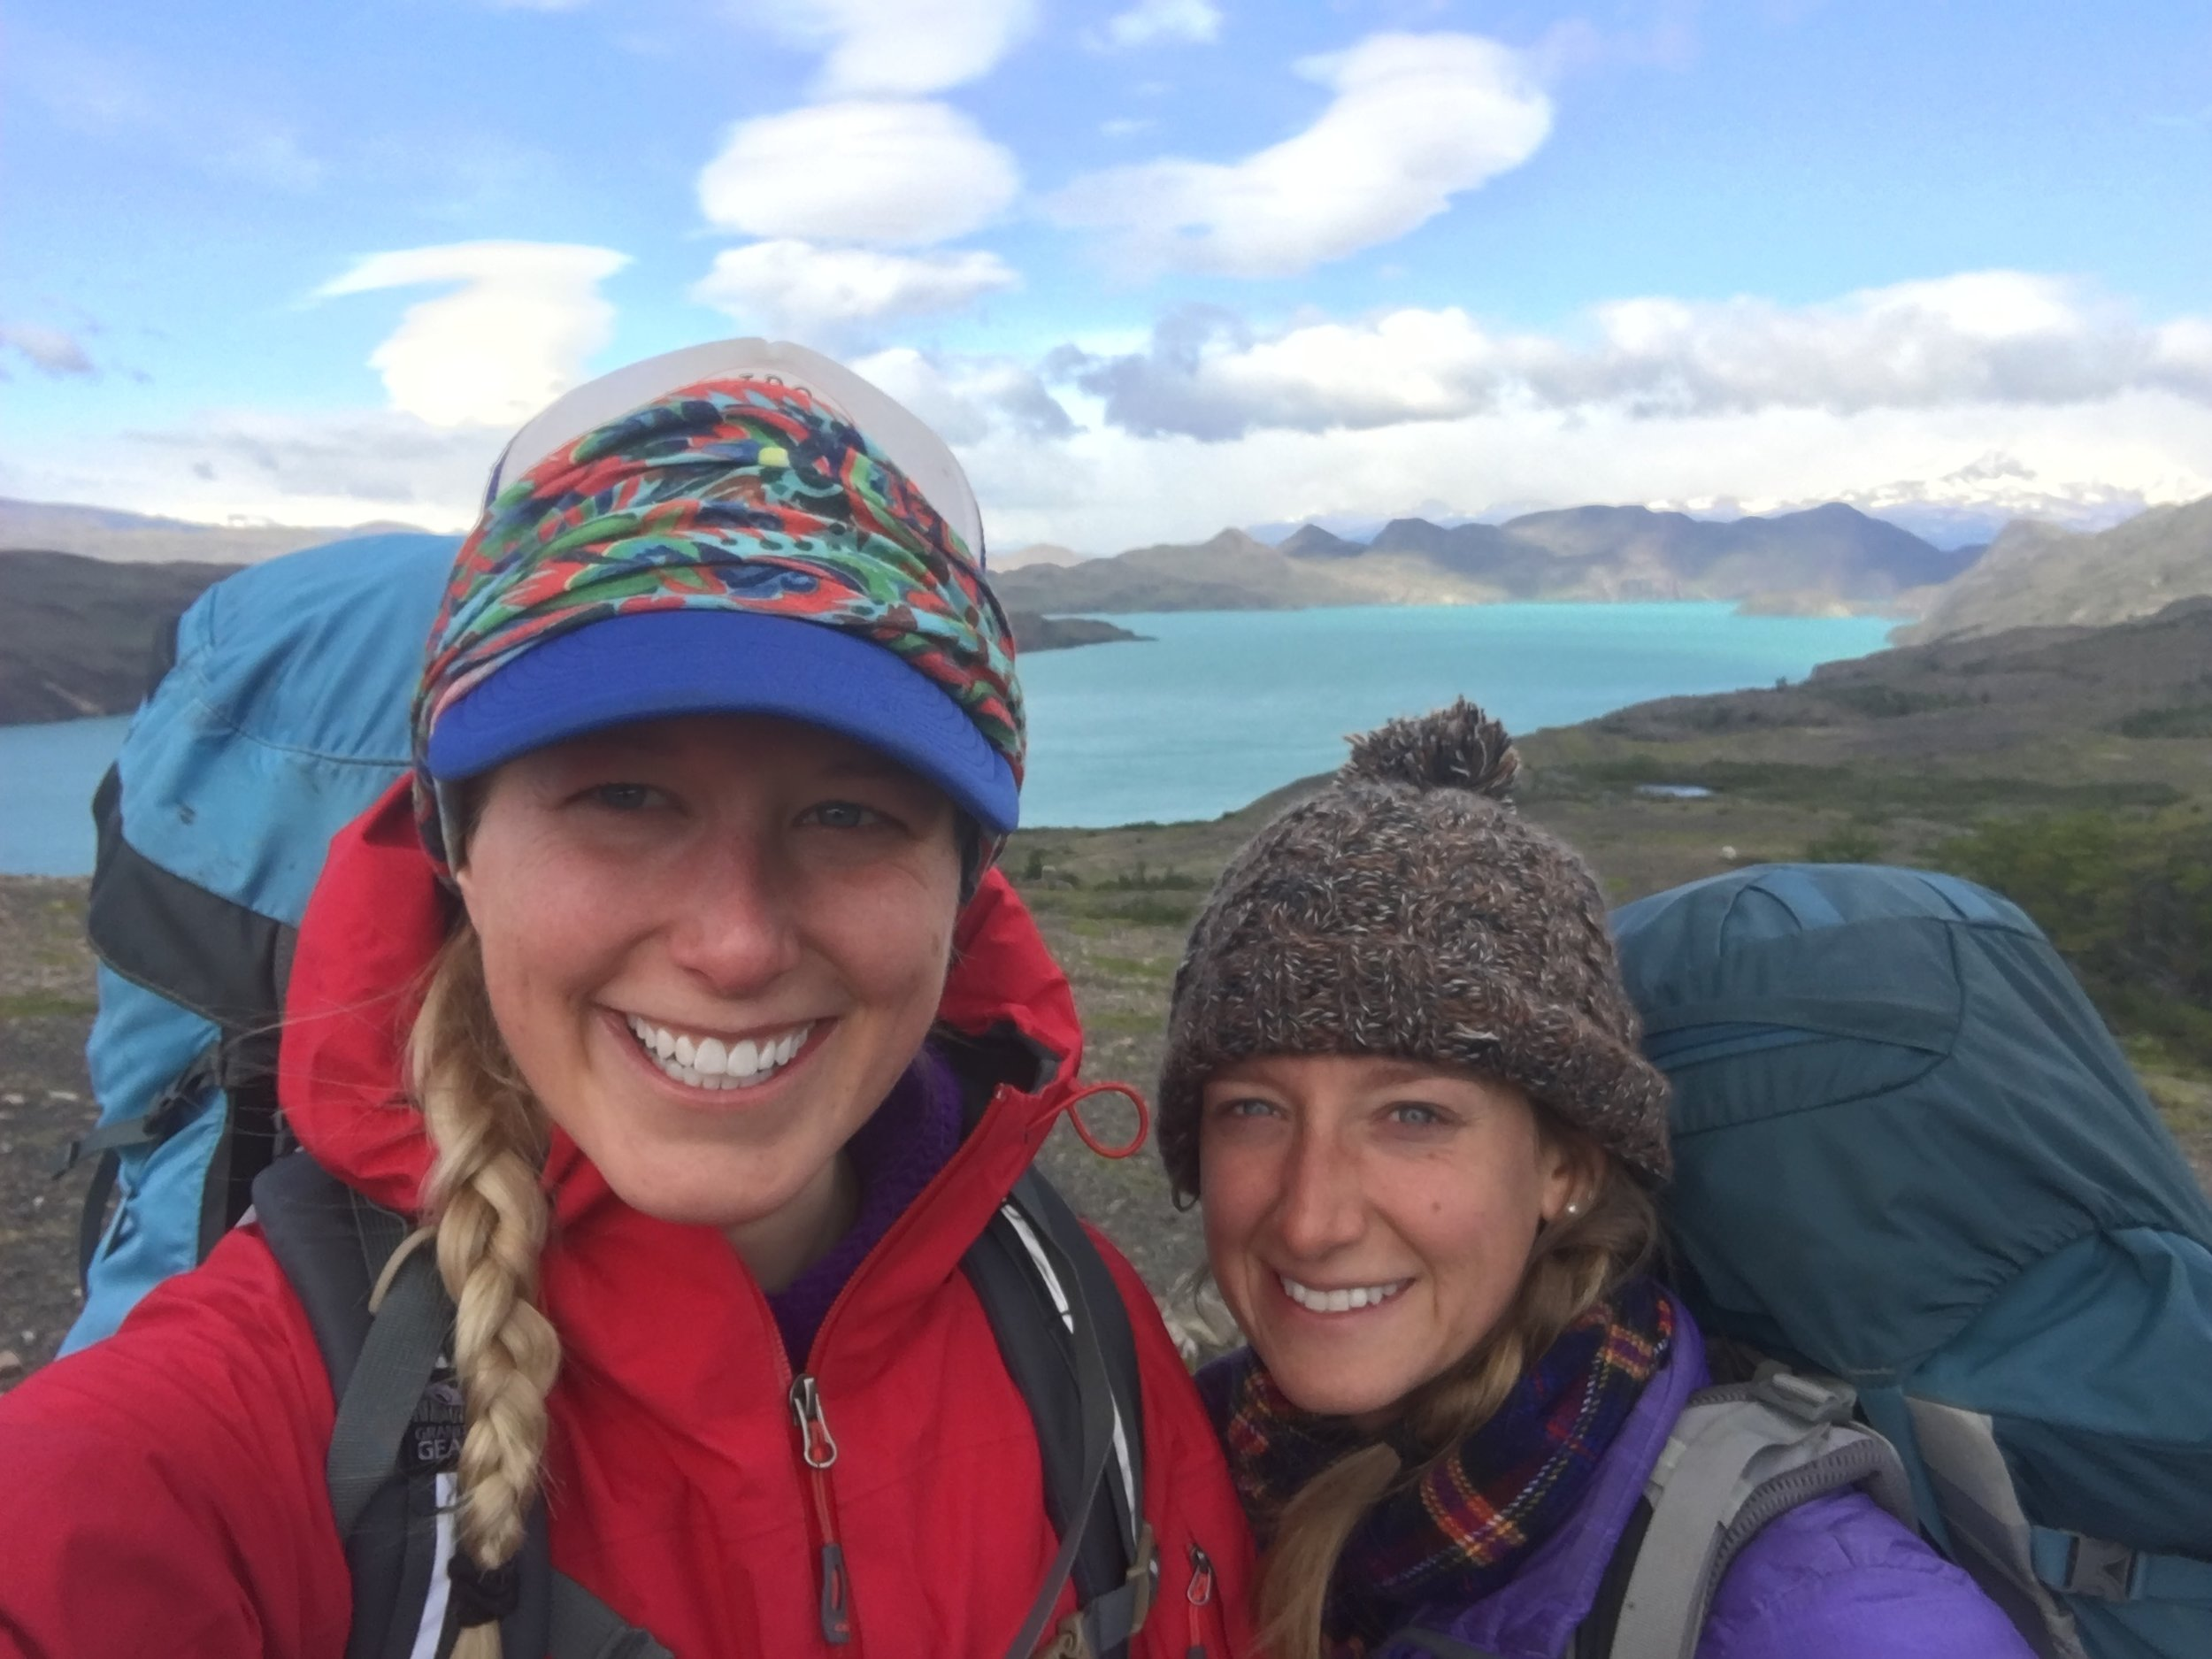 It's pretty windy in Patagonia turns out.